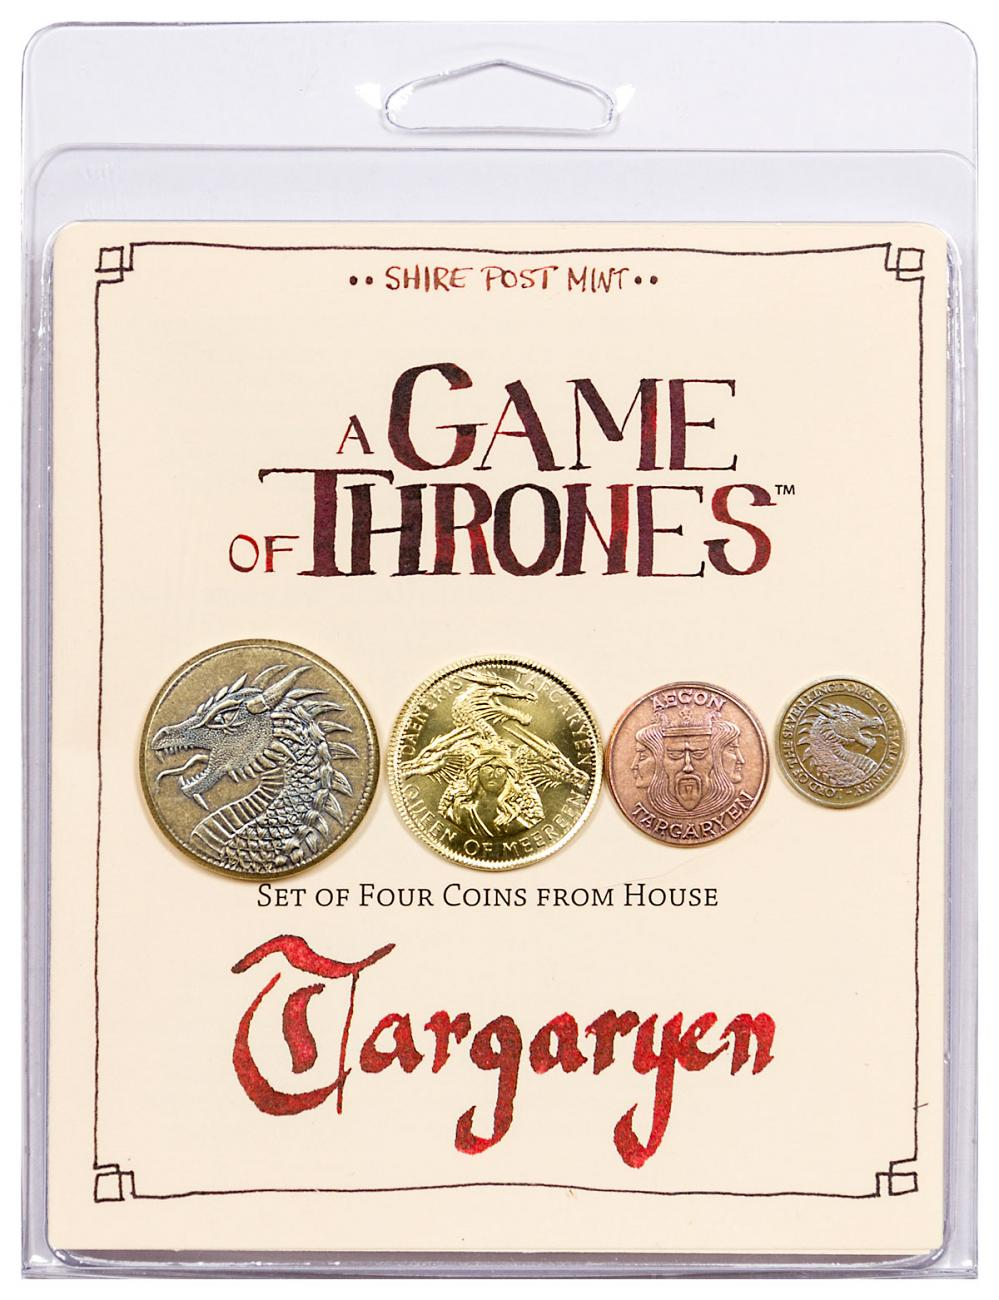 Set of 4 Fantasy Coins - A Game of Thrones House Targaryen Original Packaging